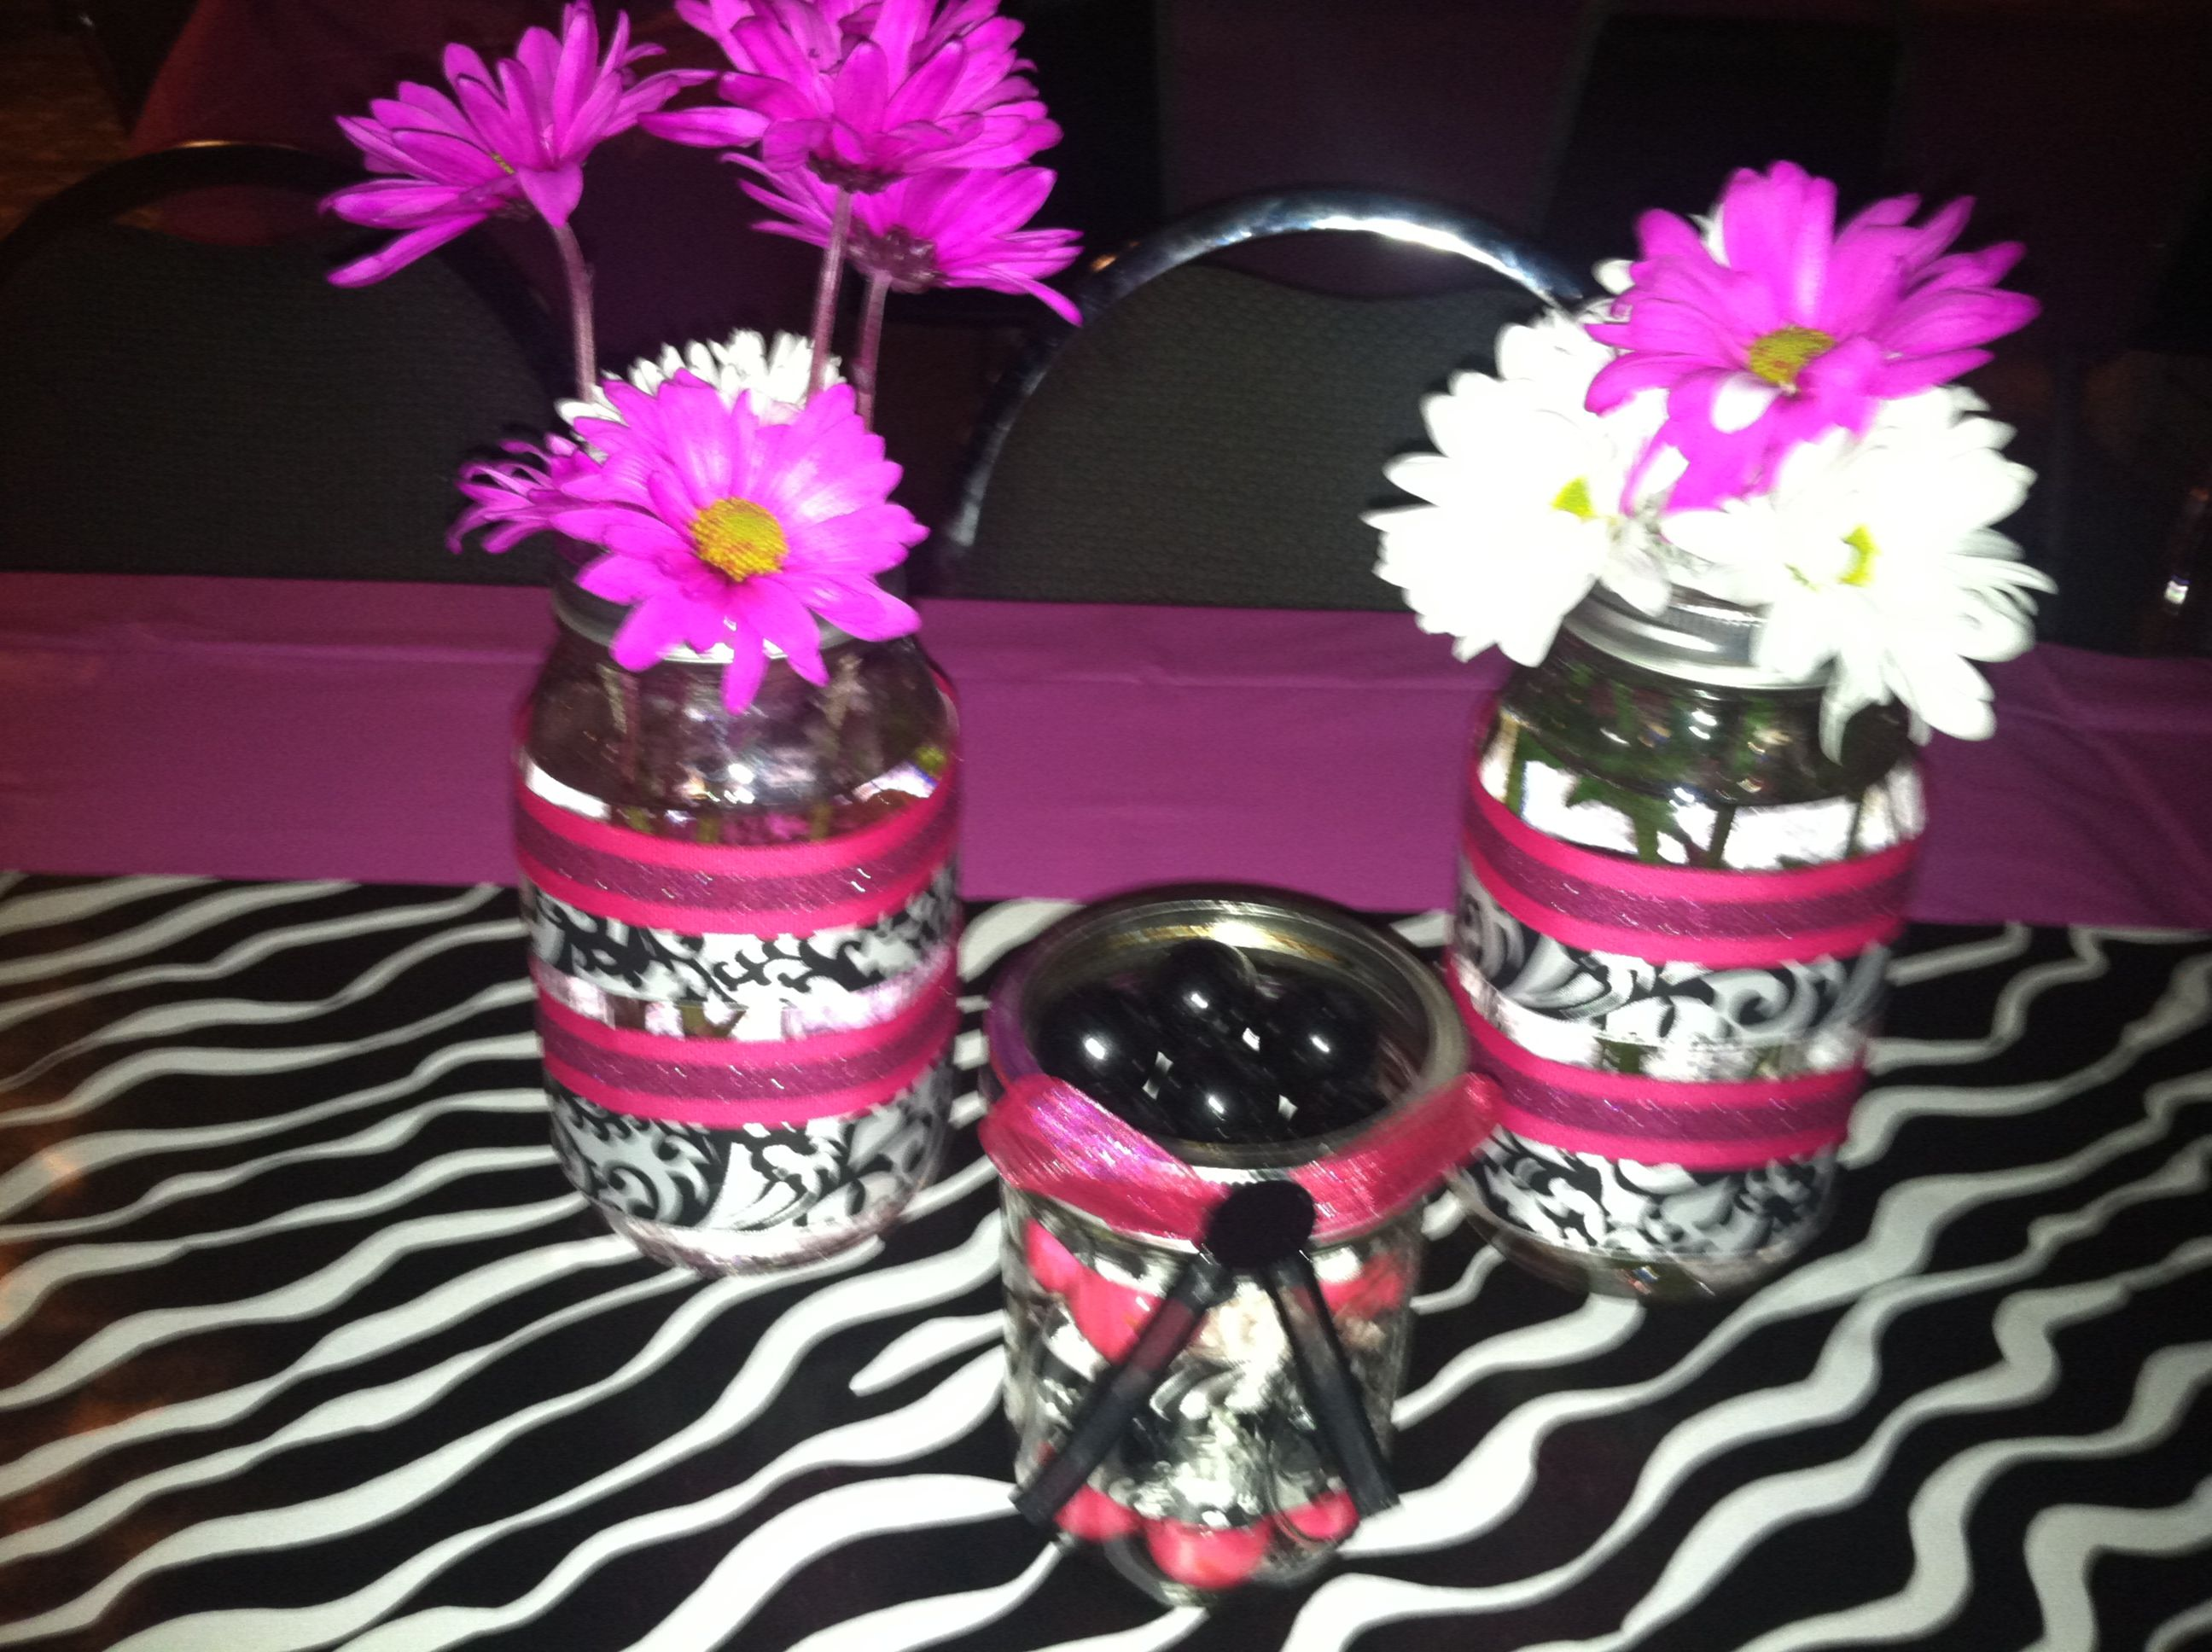 40th birthday party decorations I made Pink black and zebra